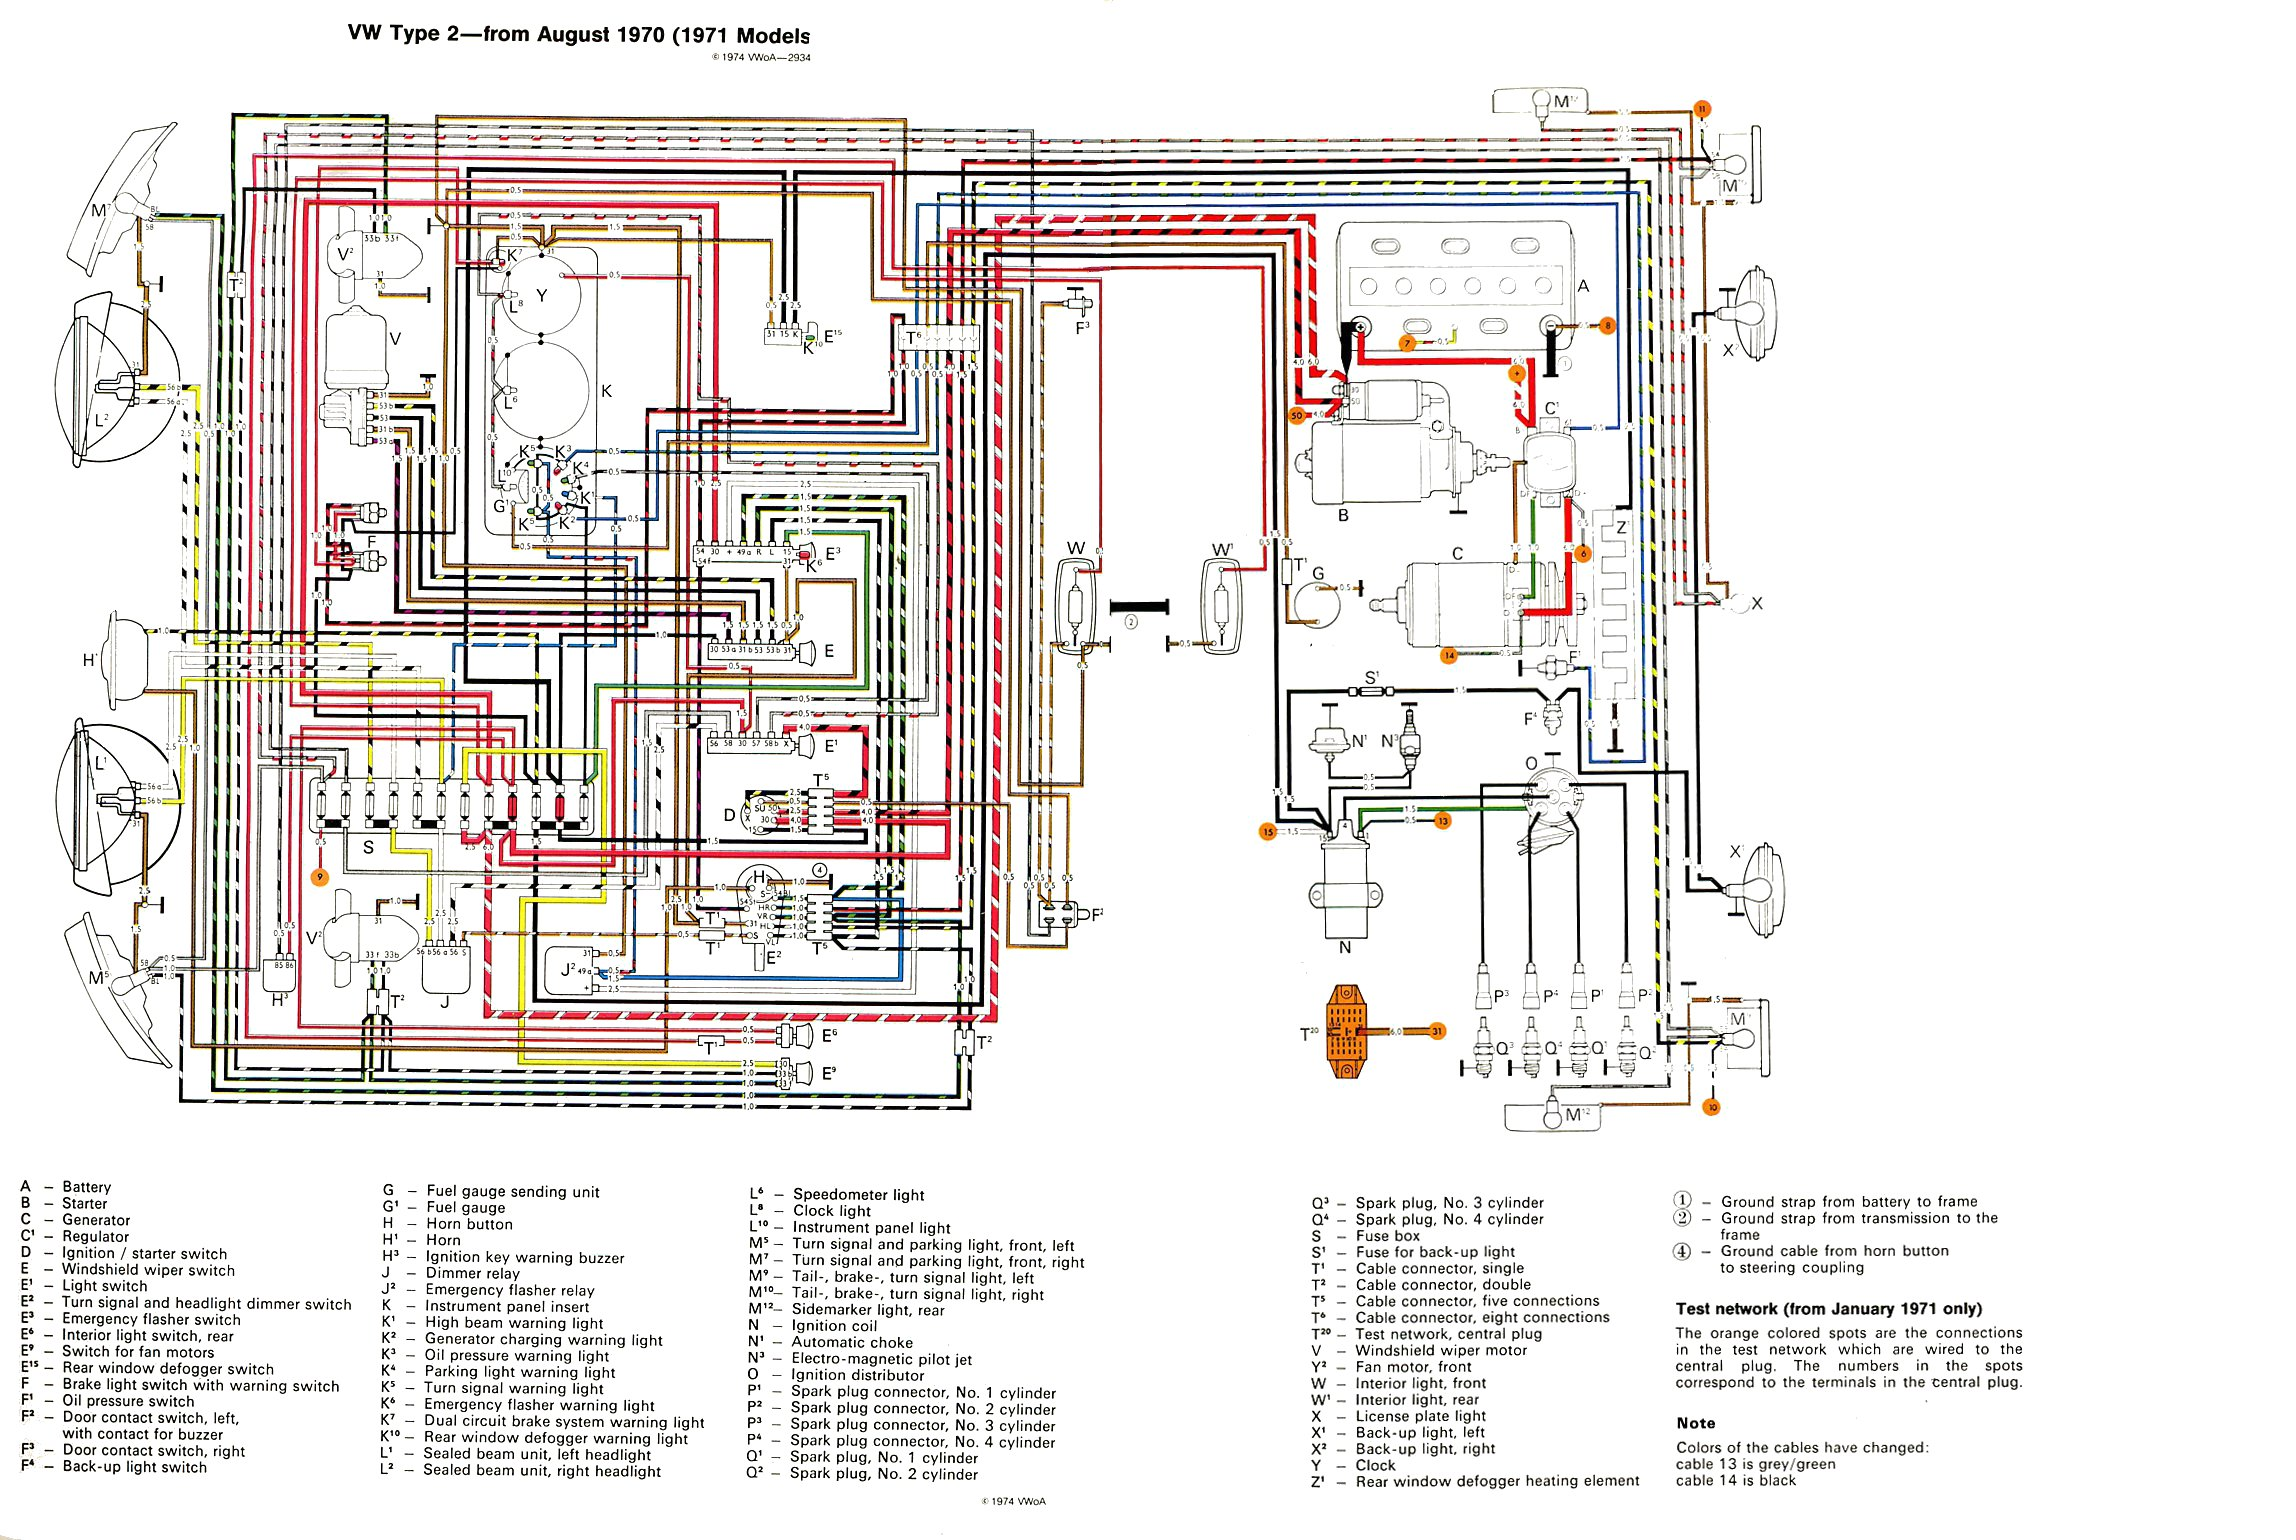 thesamba com type 2 wiring diagrams rh thesamba com 3-Way Switch Wiring Diagram Omega Alarm Wiring Diagrams